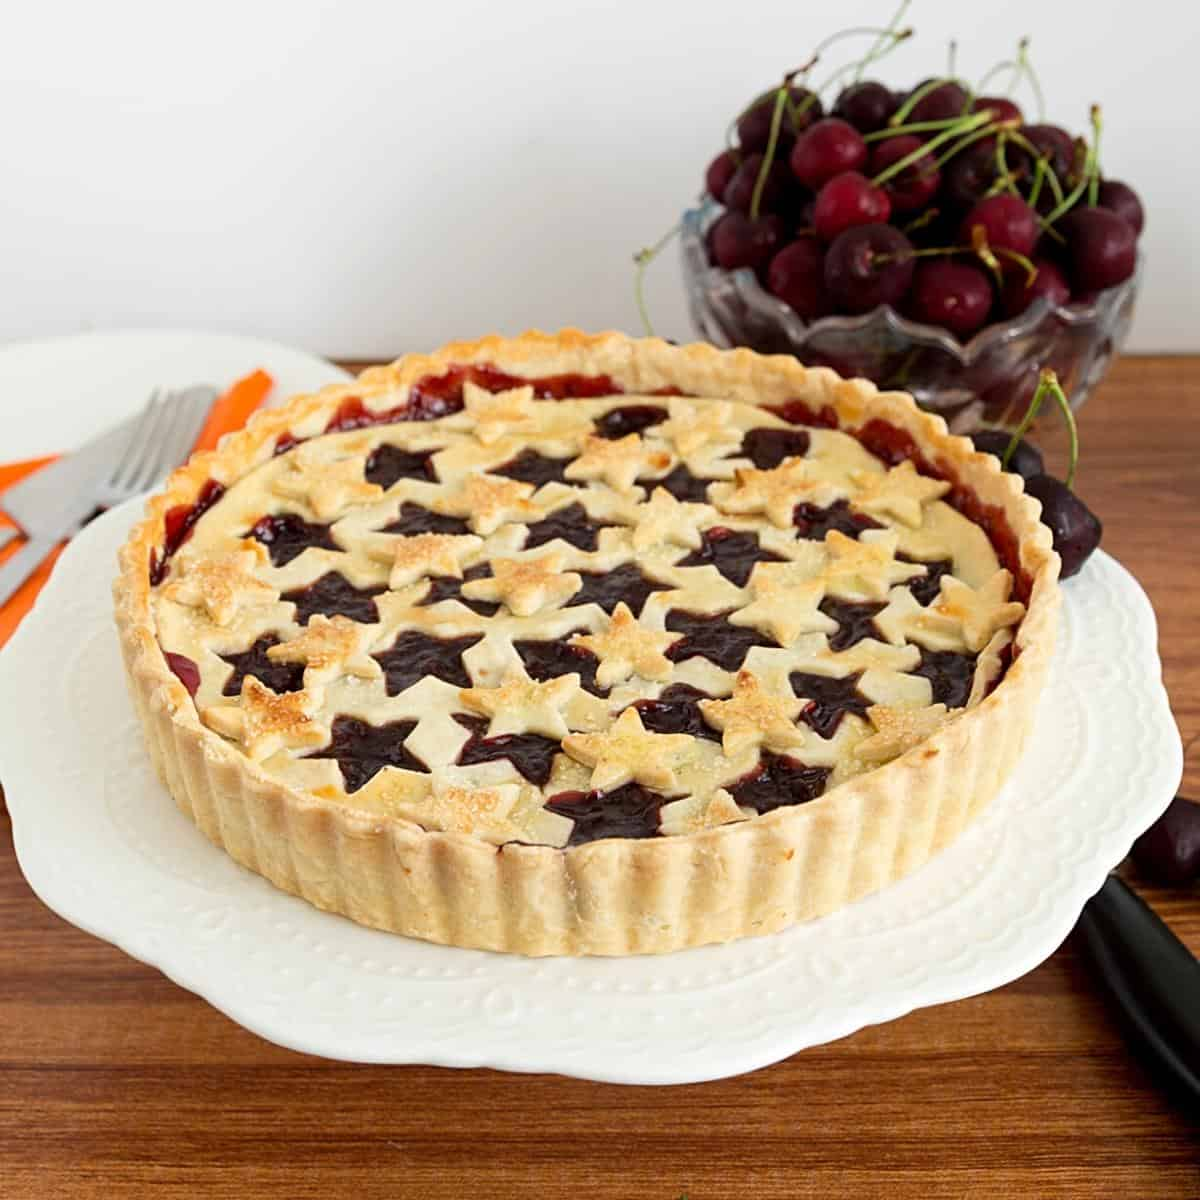 A pie crust baked with cherry filling.